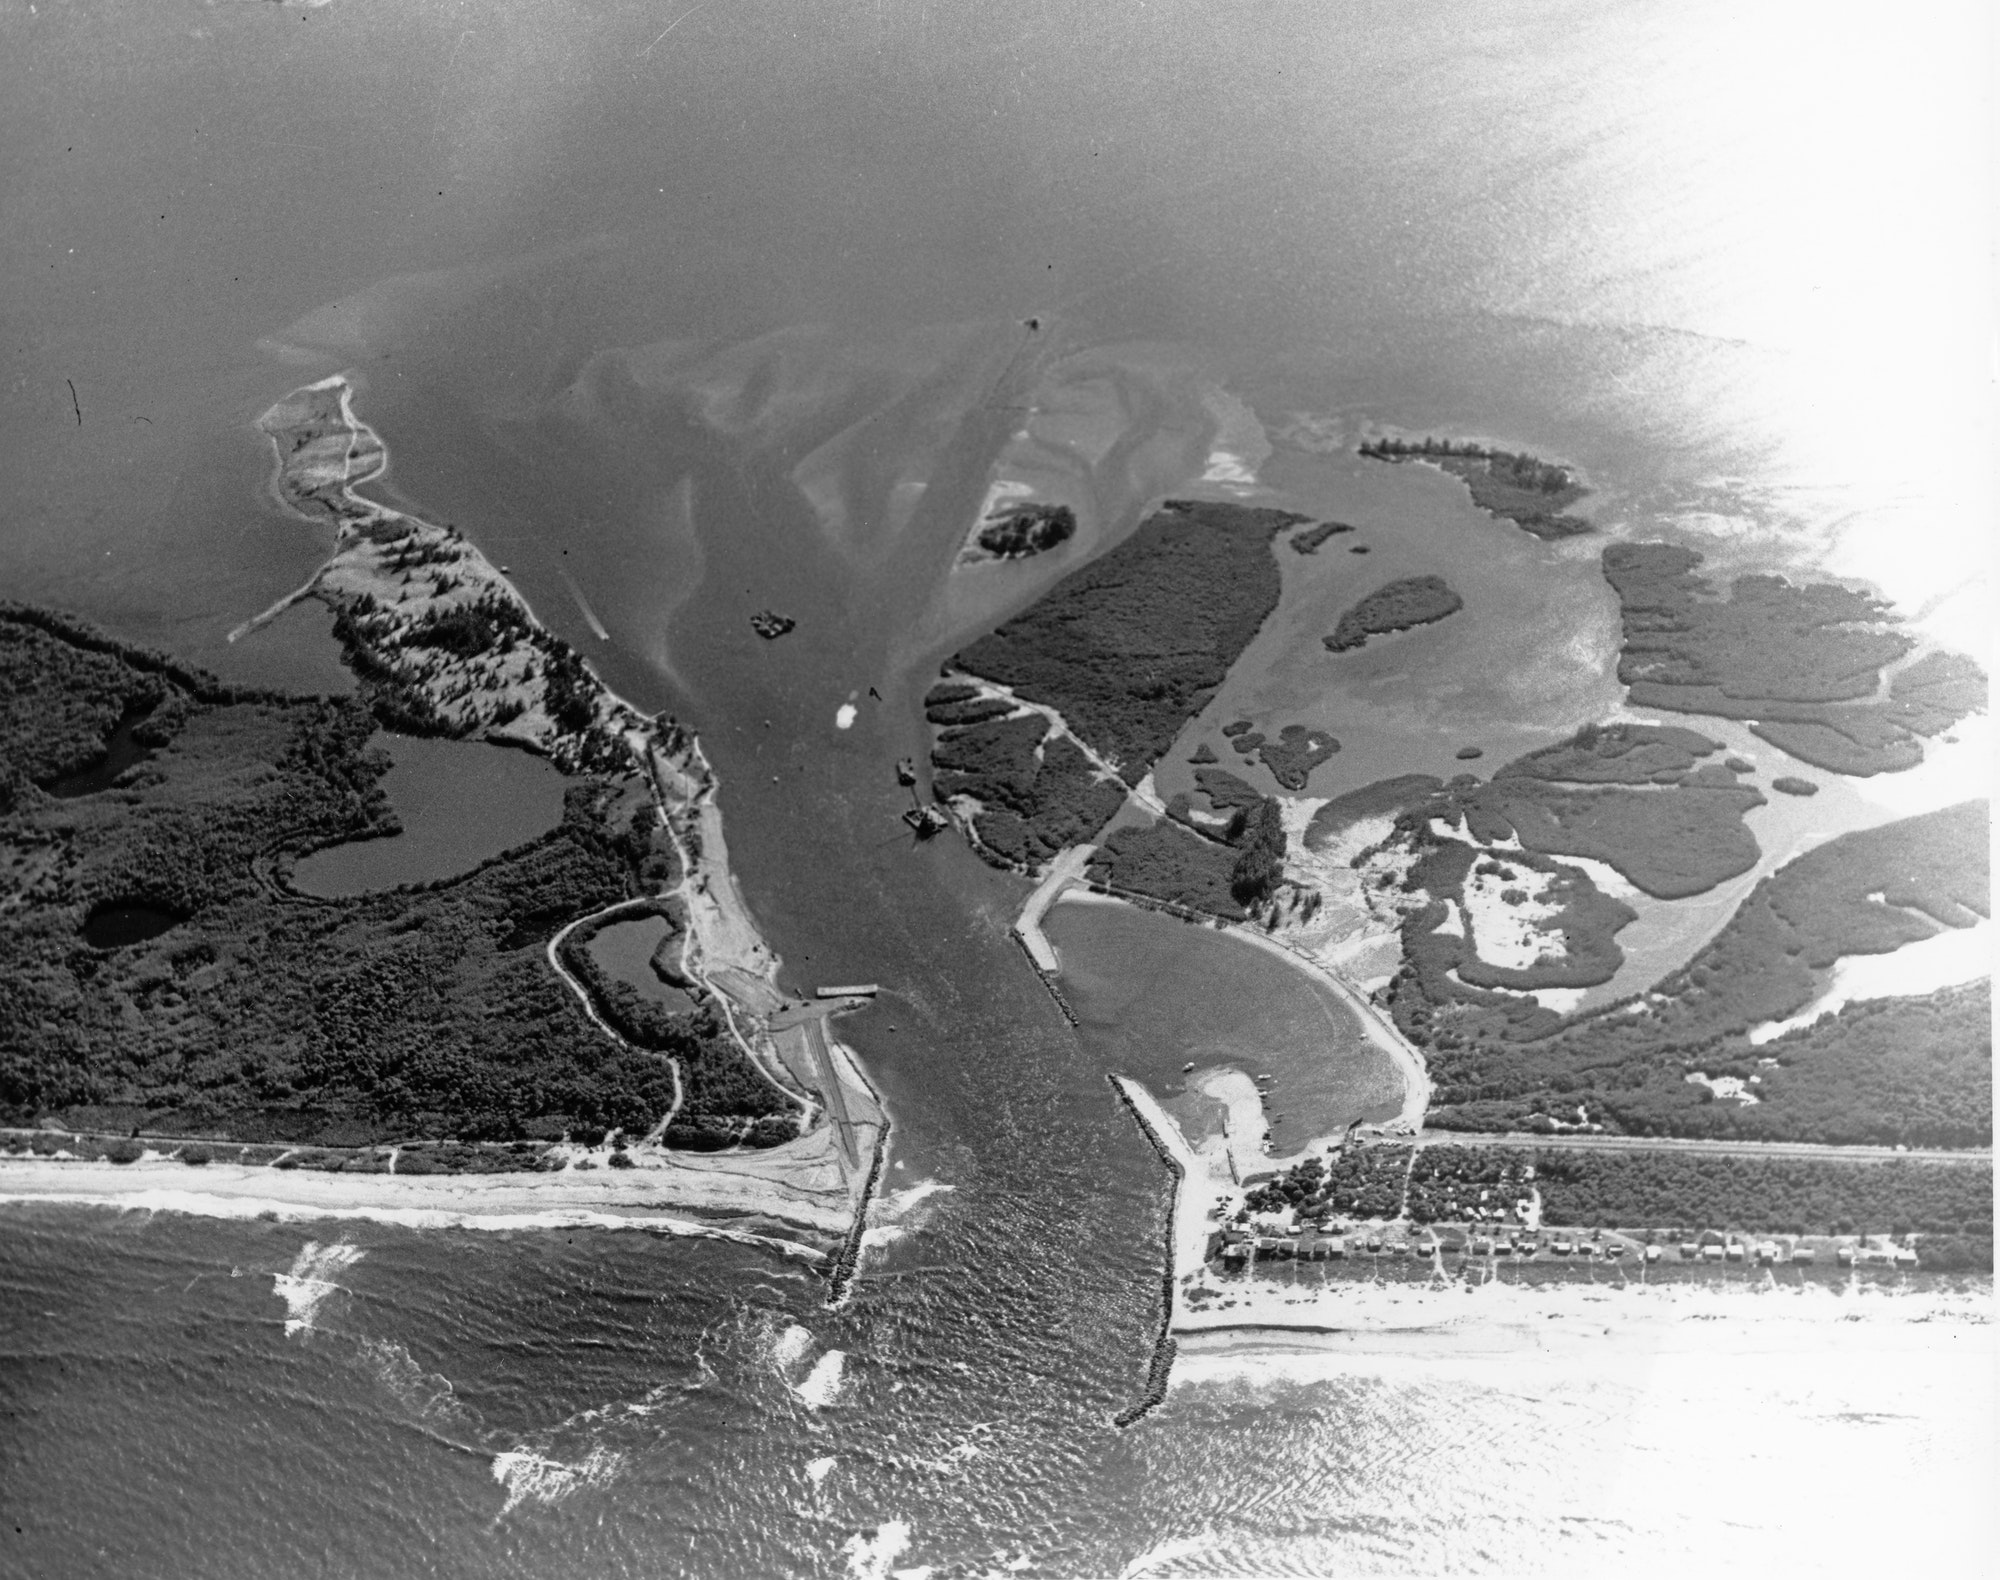 aerial view of the inlet in 1962 looking West with dredge boats and equipment removing sand